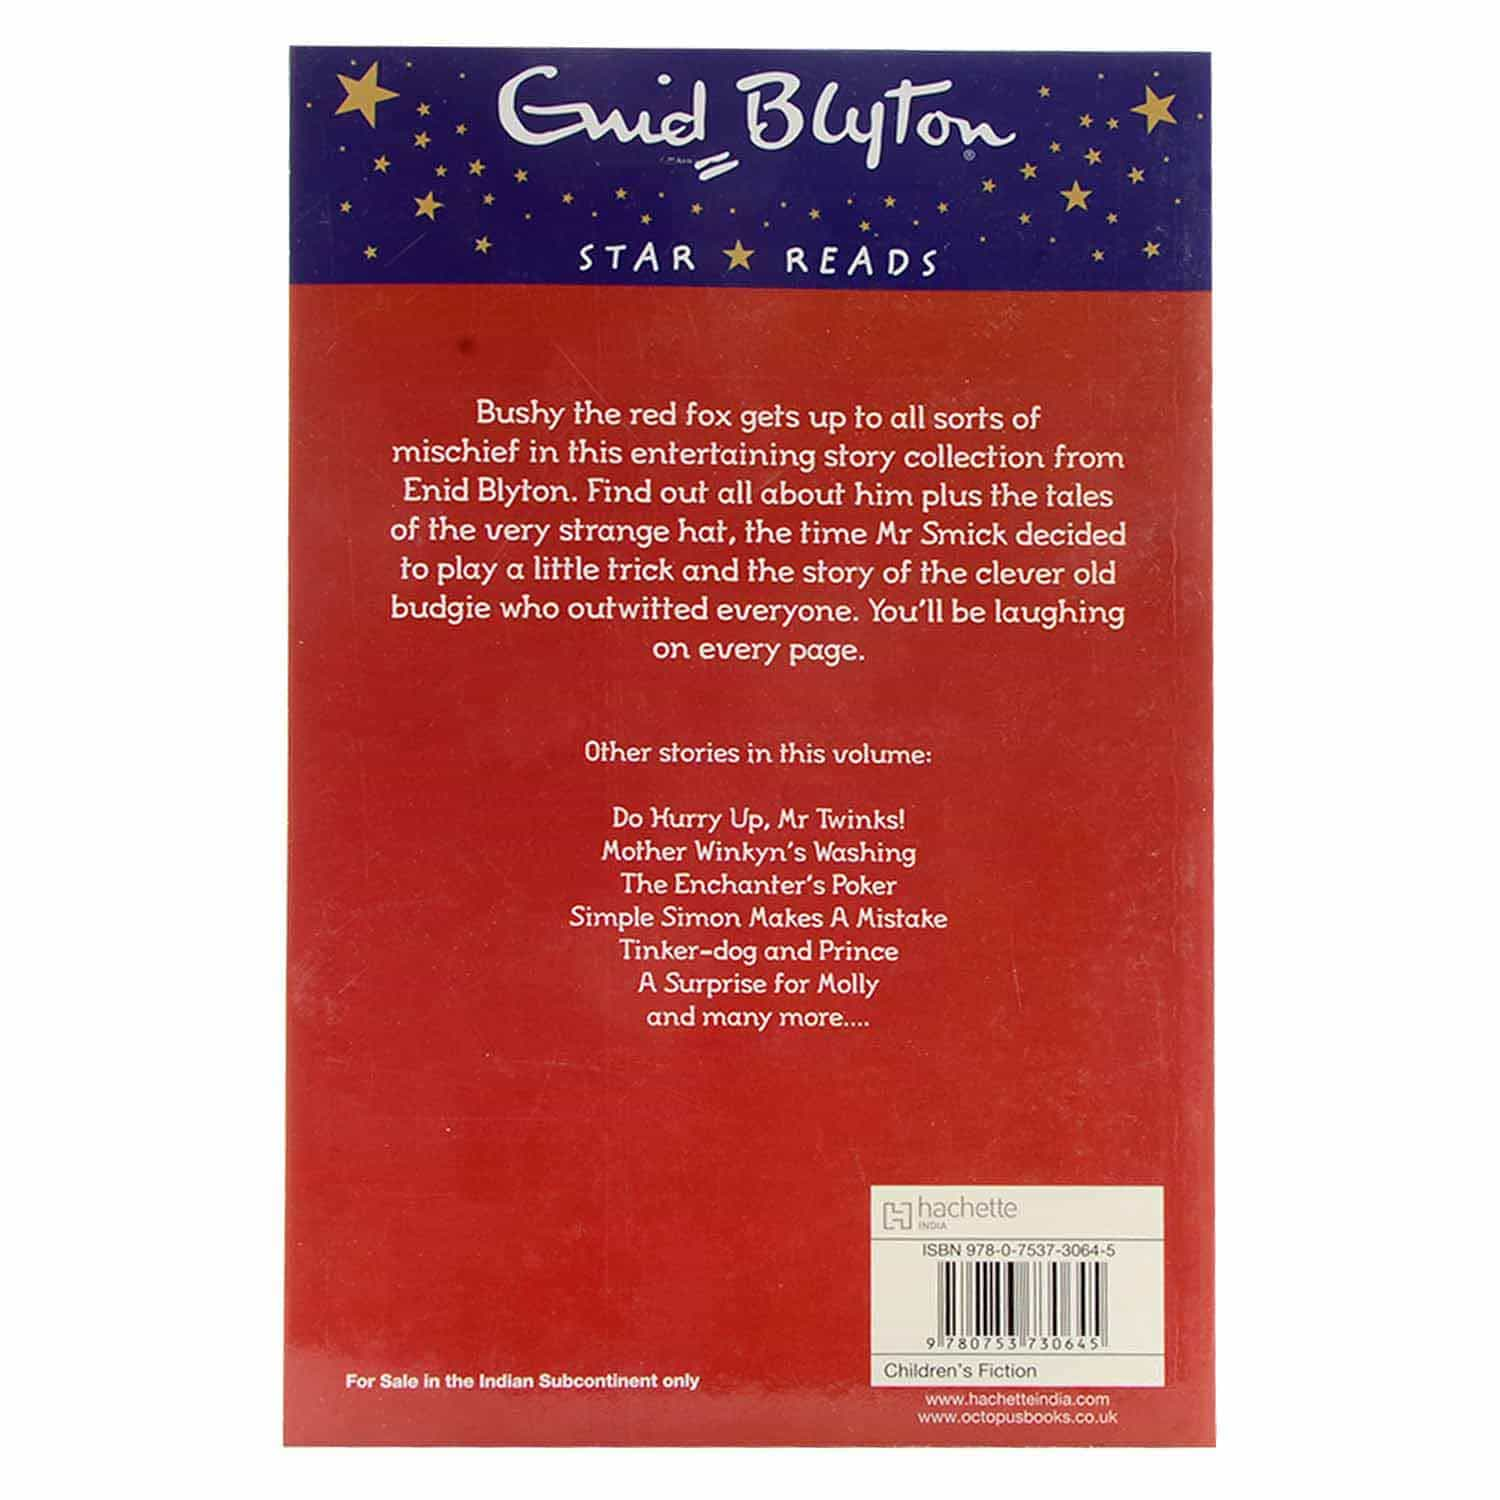 Enid Blyton - The Tale of Bushy the Fox and Other Stories